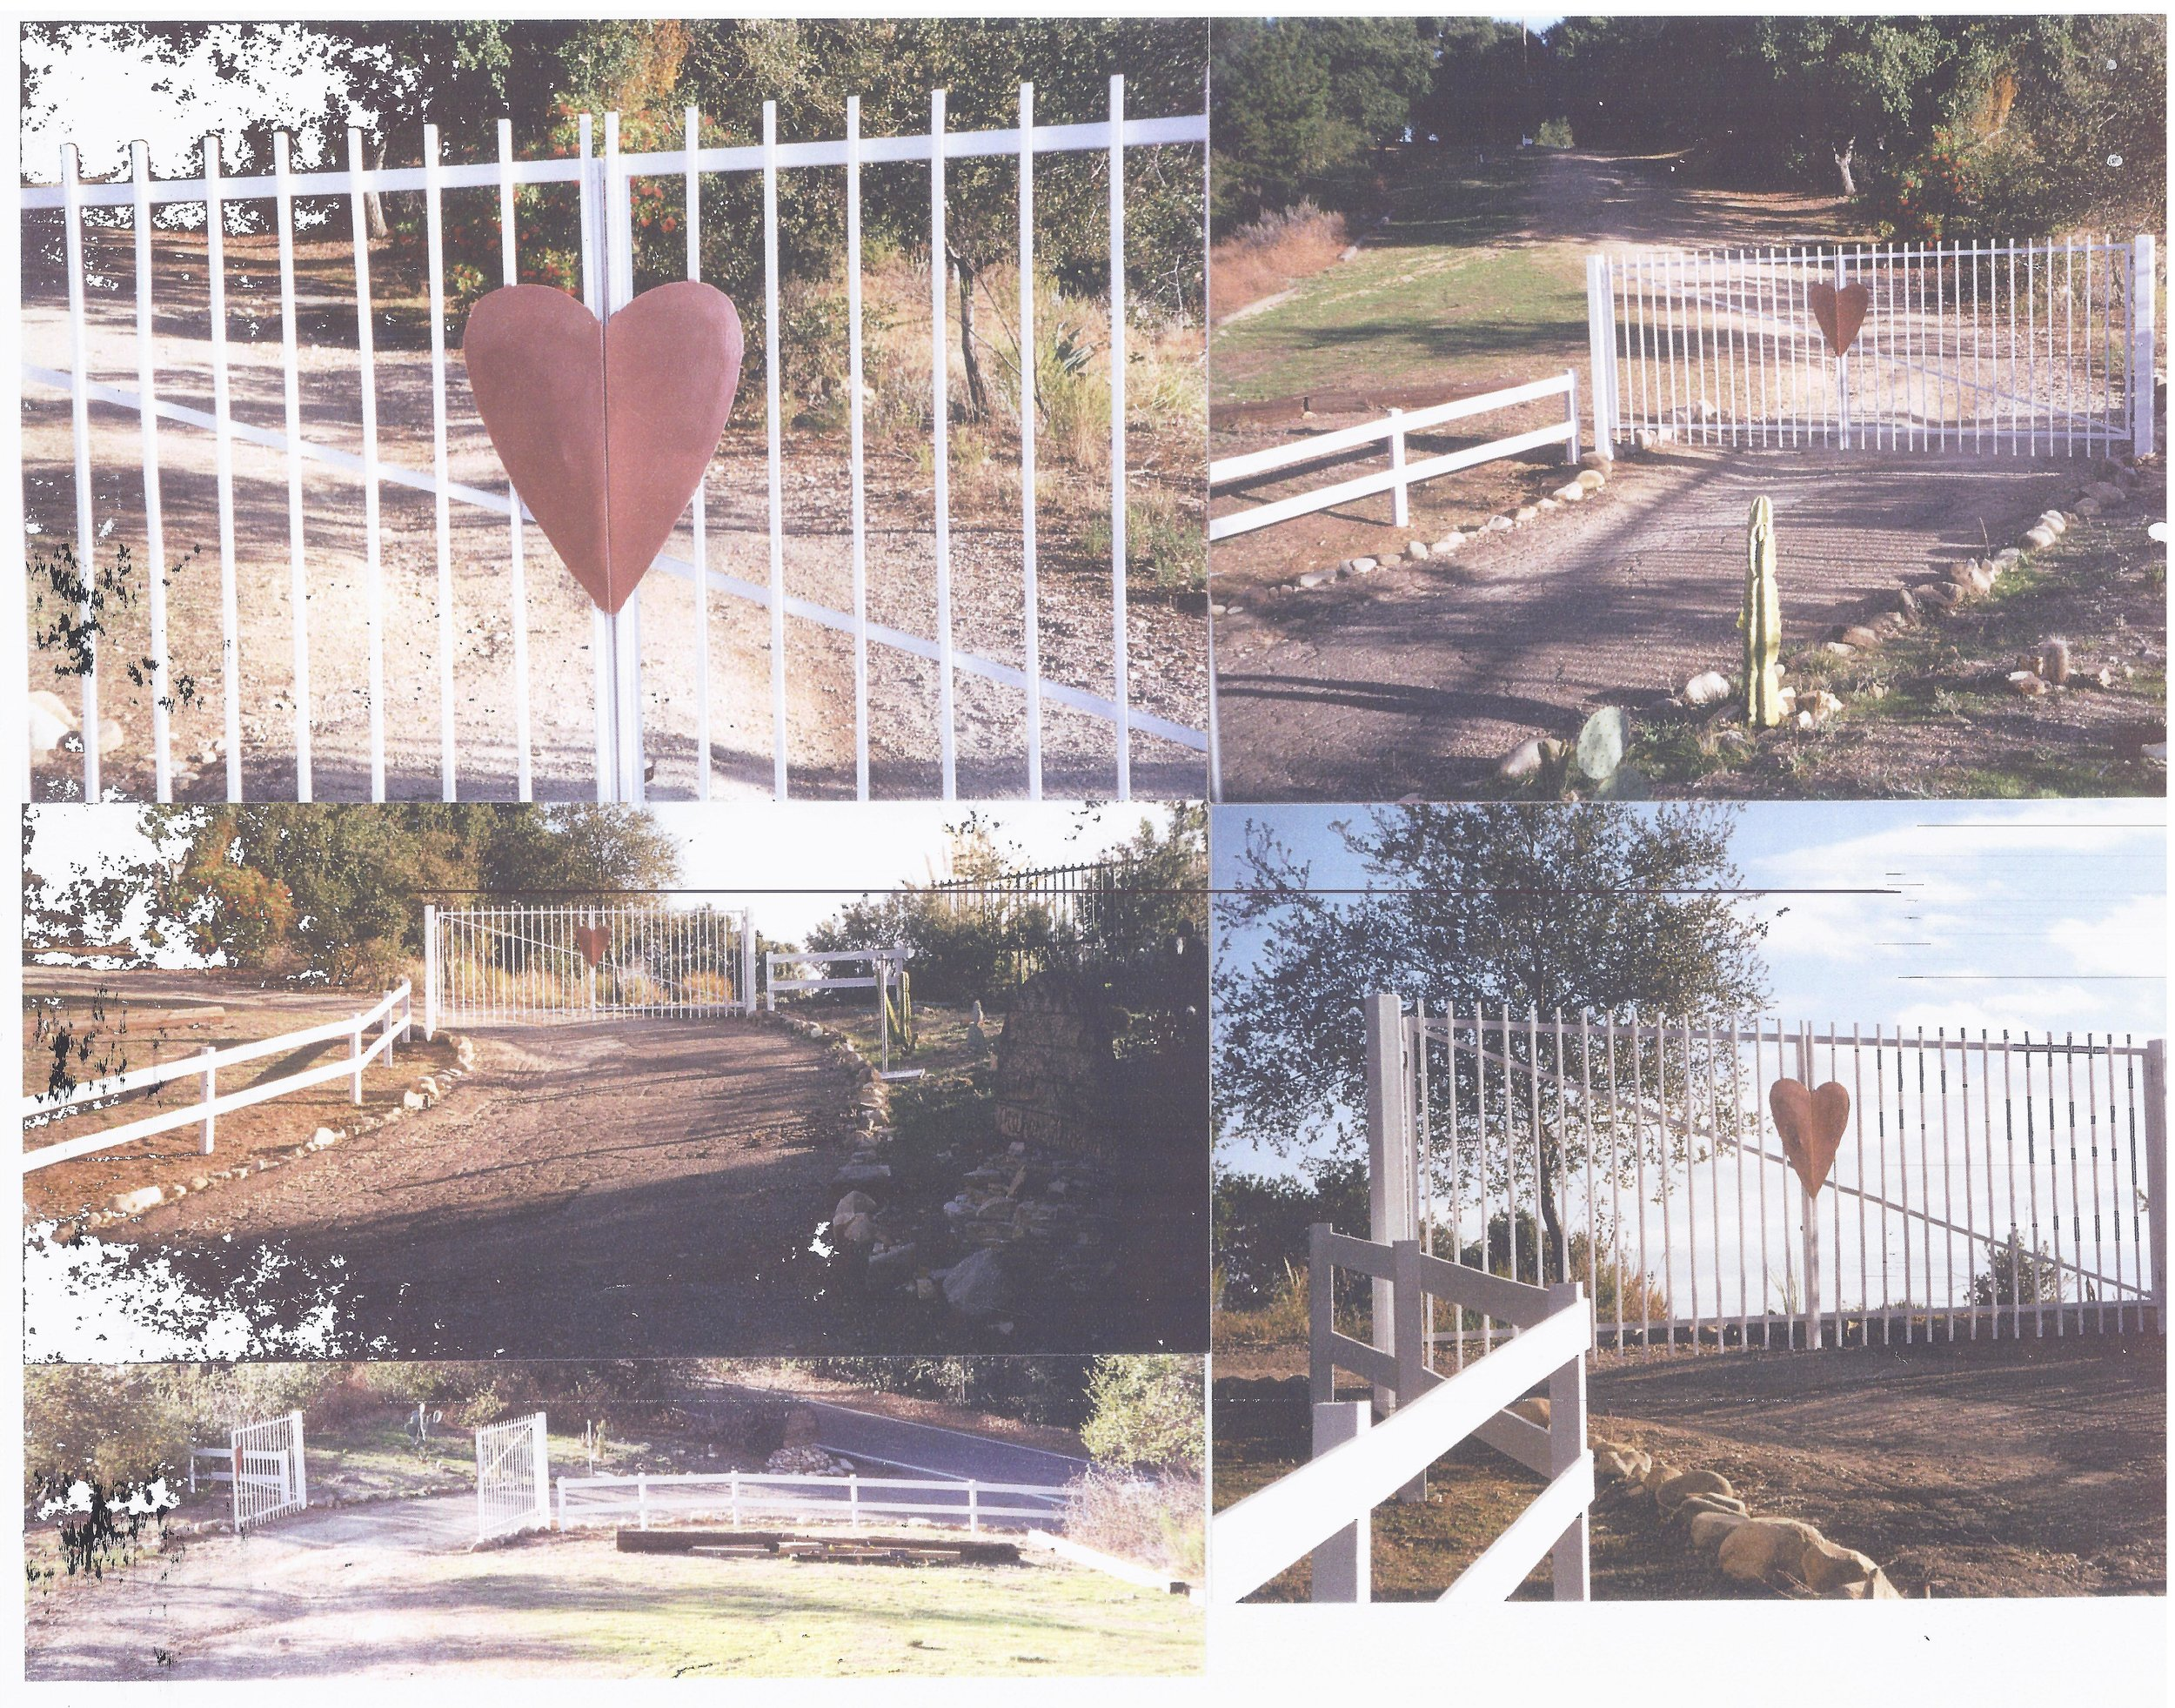 THE HEART GATE when it was installed in November 2003. (Photos: Ray Johnston)